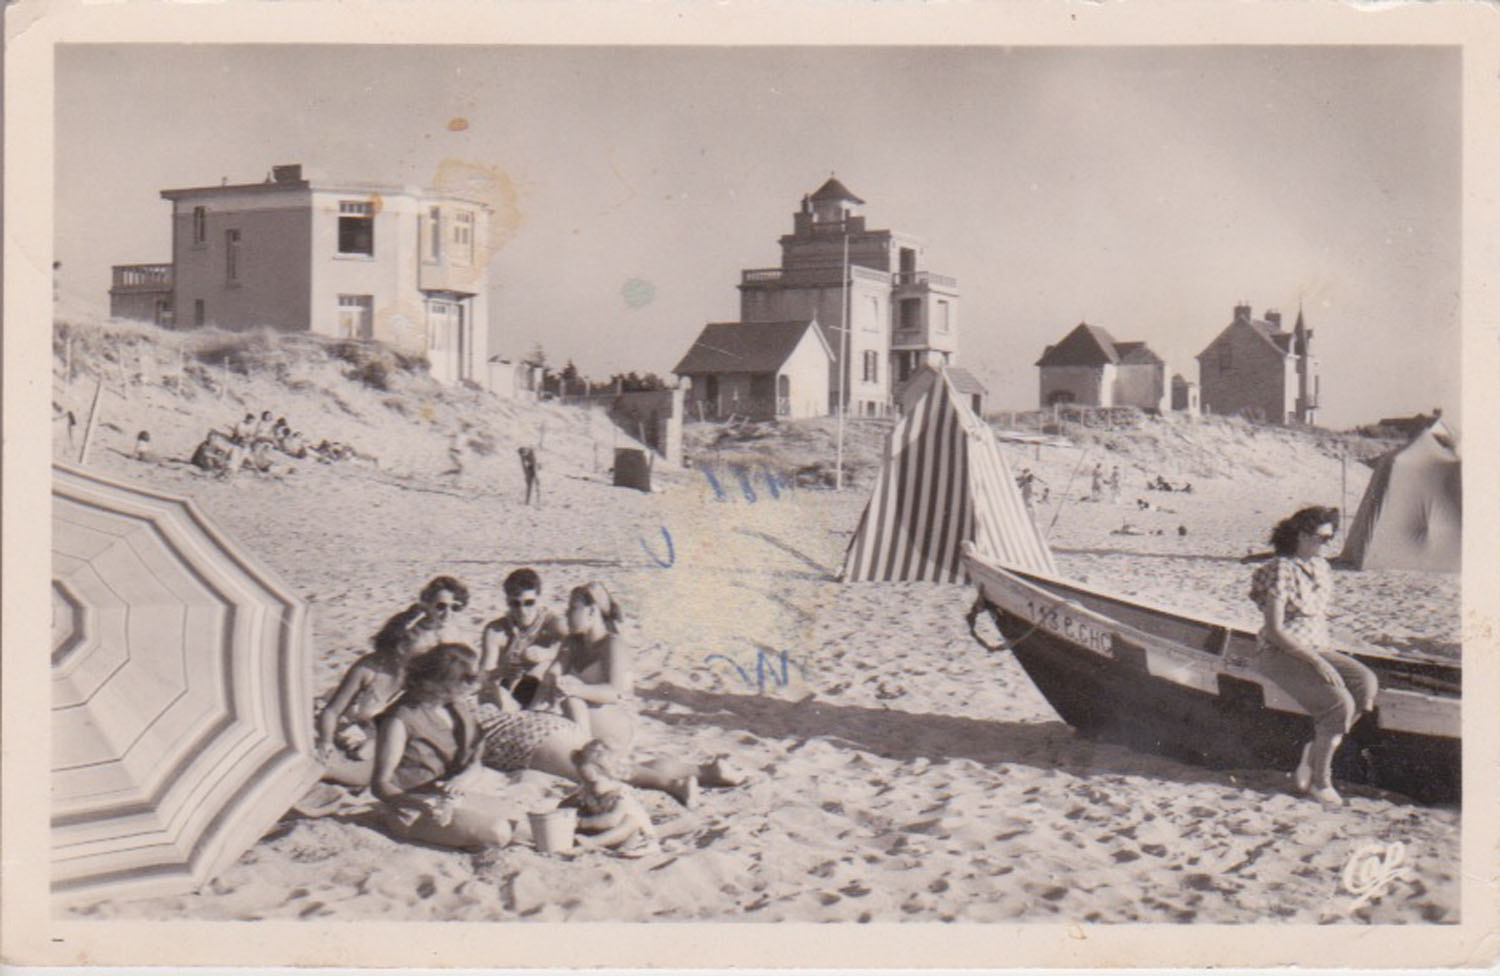 1951 St Martin Plage © collection Jean Claude Ferret